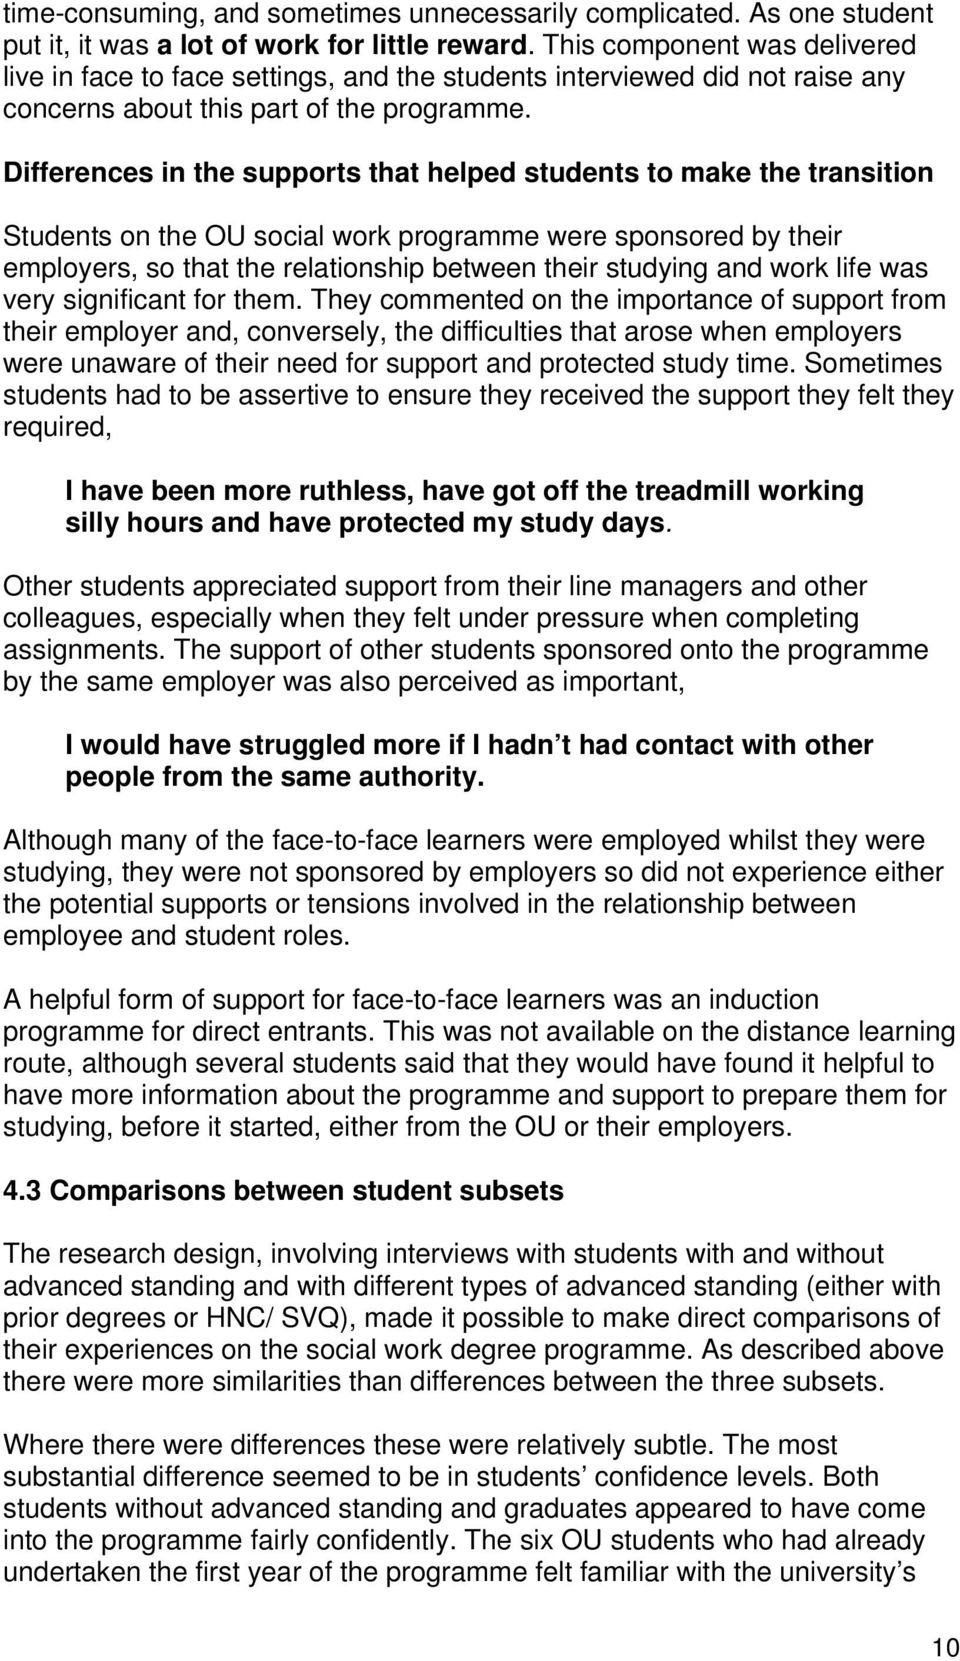 Differences in the supports that helped students to make the transition Students on the OU social work programme were sponsored by their employers, so that the relationship between their studying and